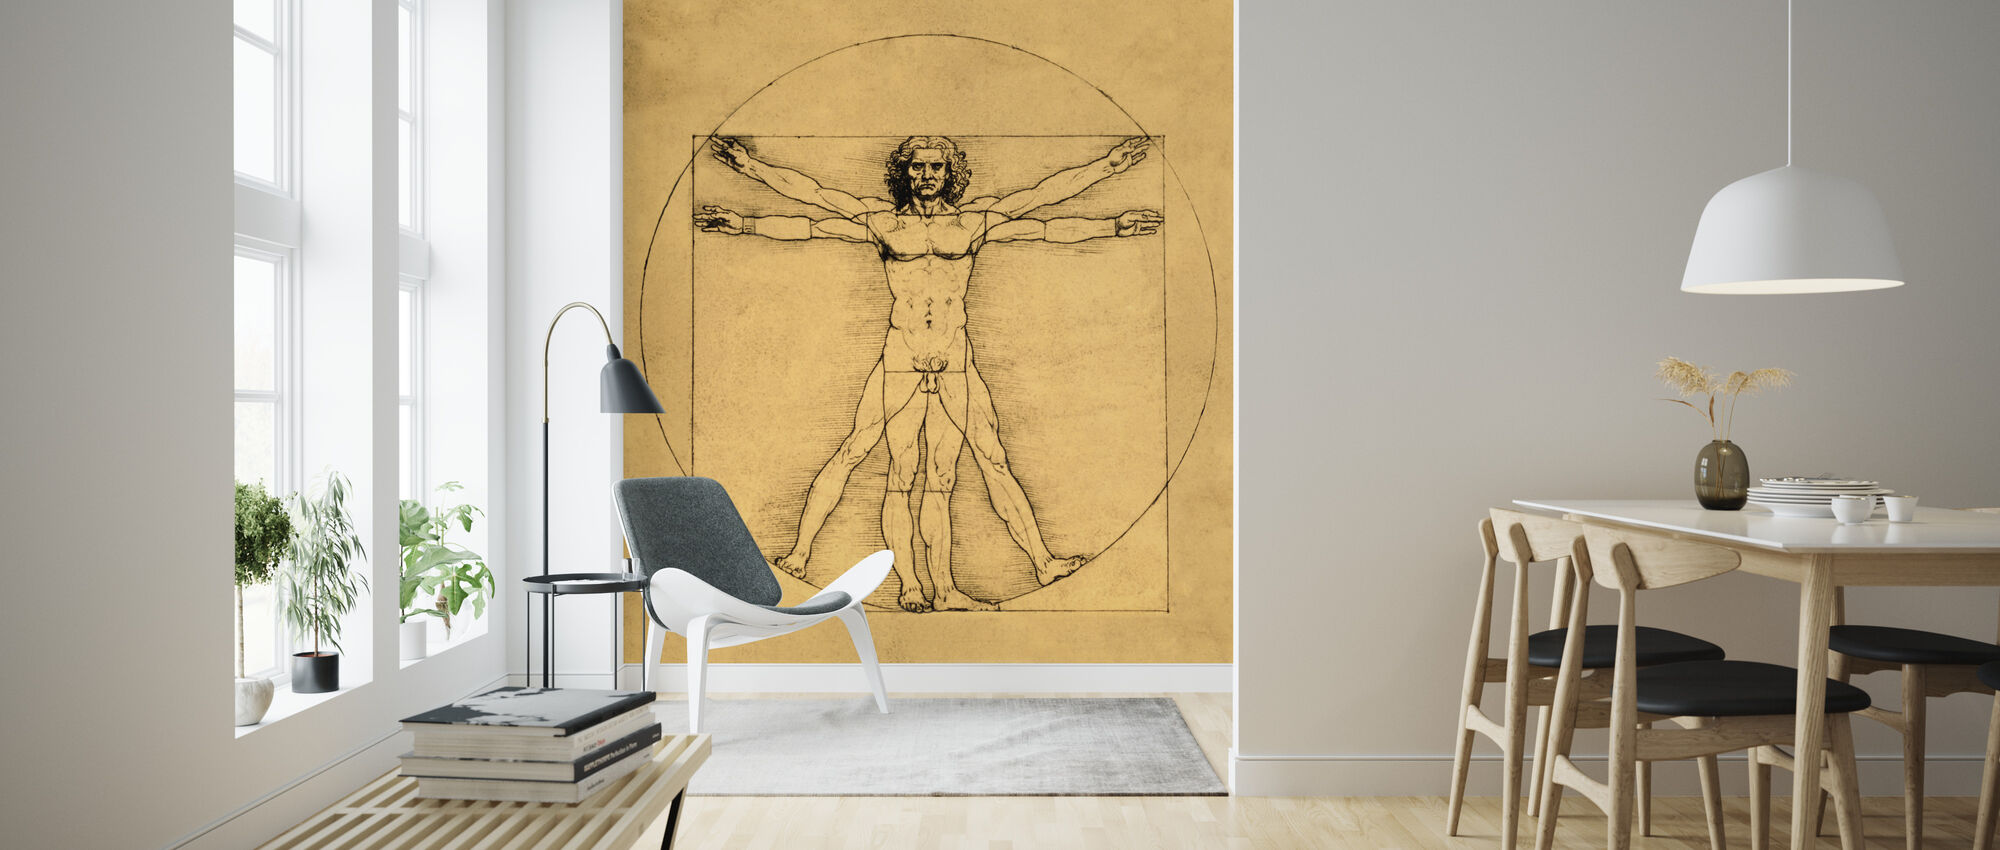 Human Figure - Leonardo da Vinci - Wallpaper - Living Room